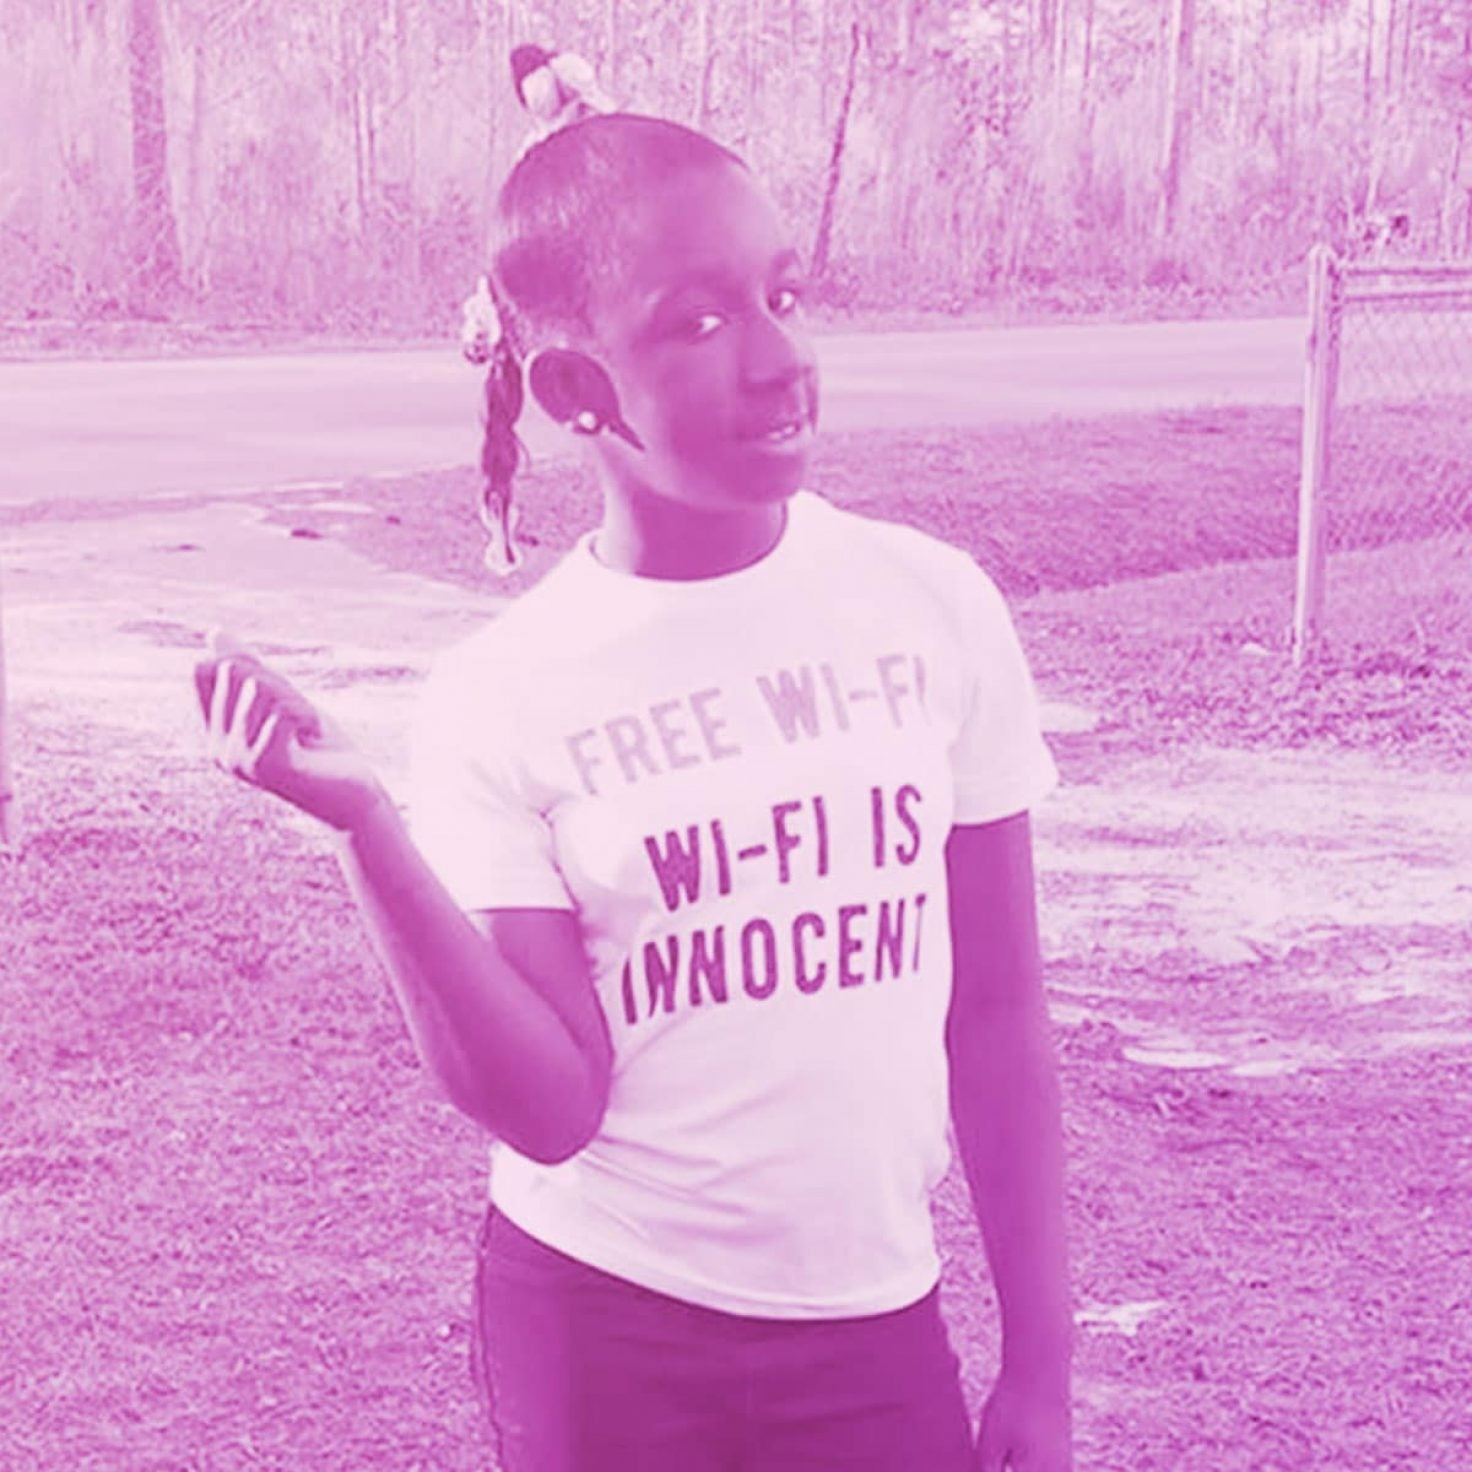 10-Year-Old South Carolina Girl Dies After Fight In Elementary School Classroom